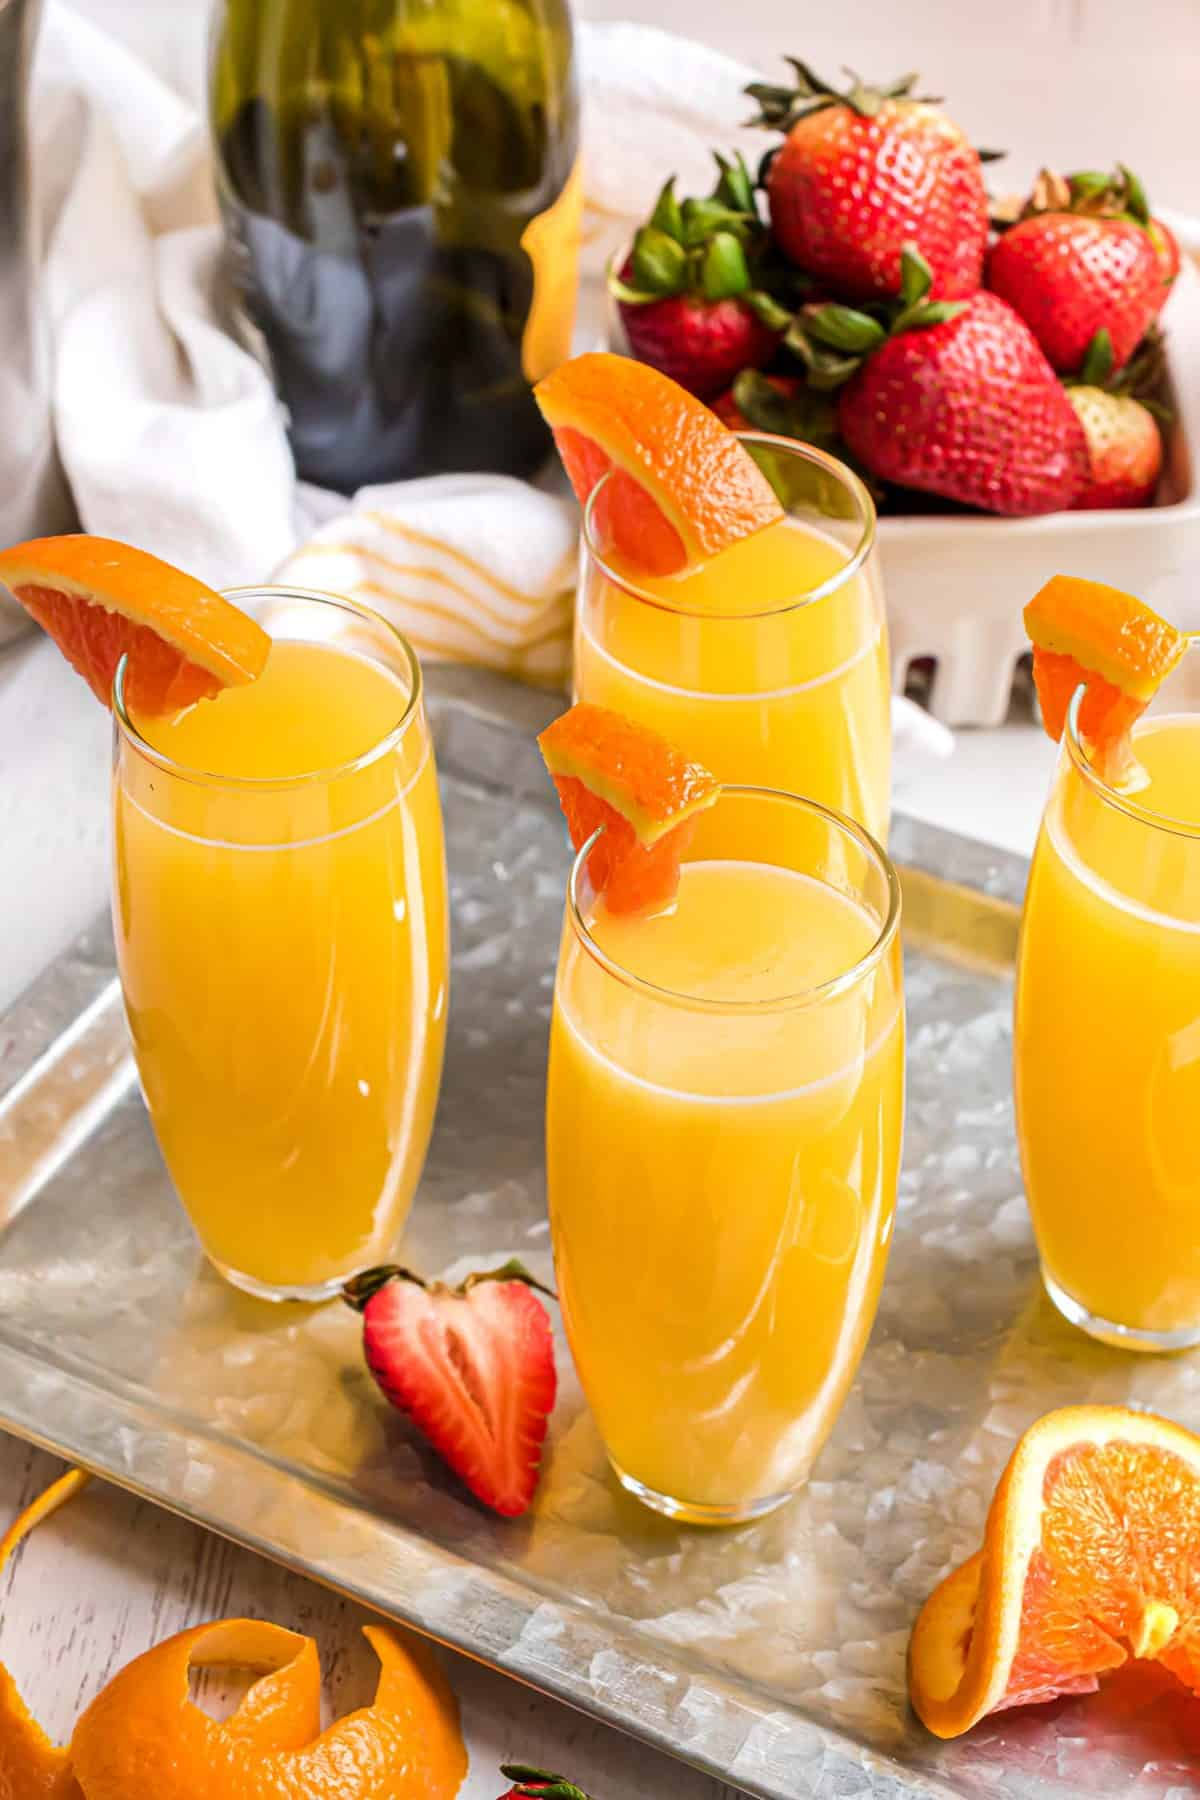 Tray of mimosa cocktails with orange juice and an orange wedge garnish.